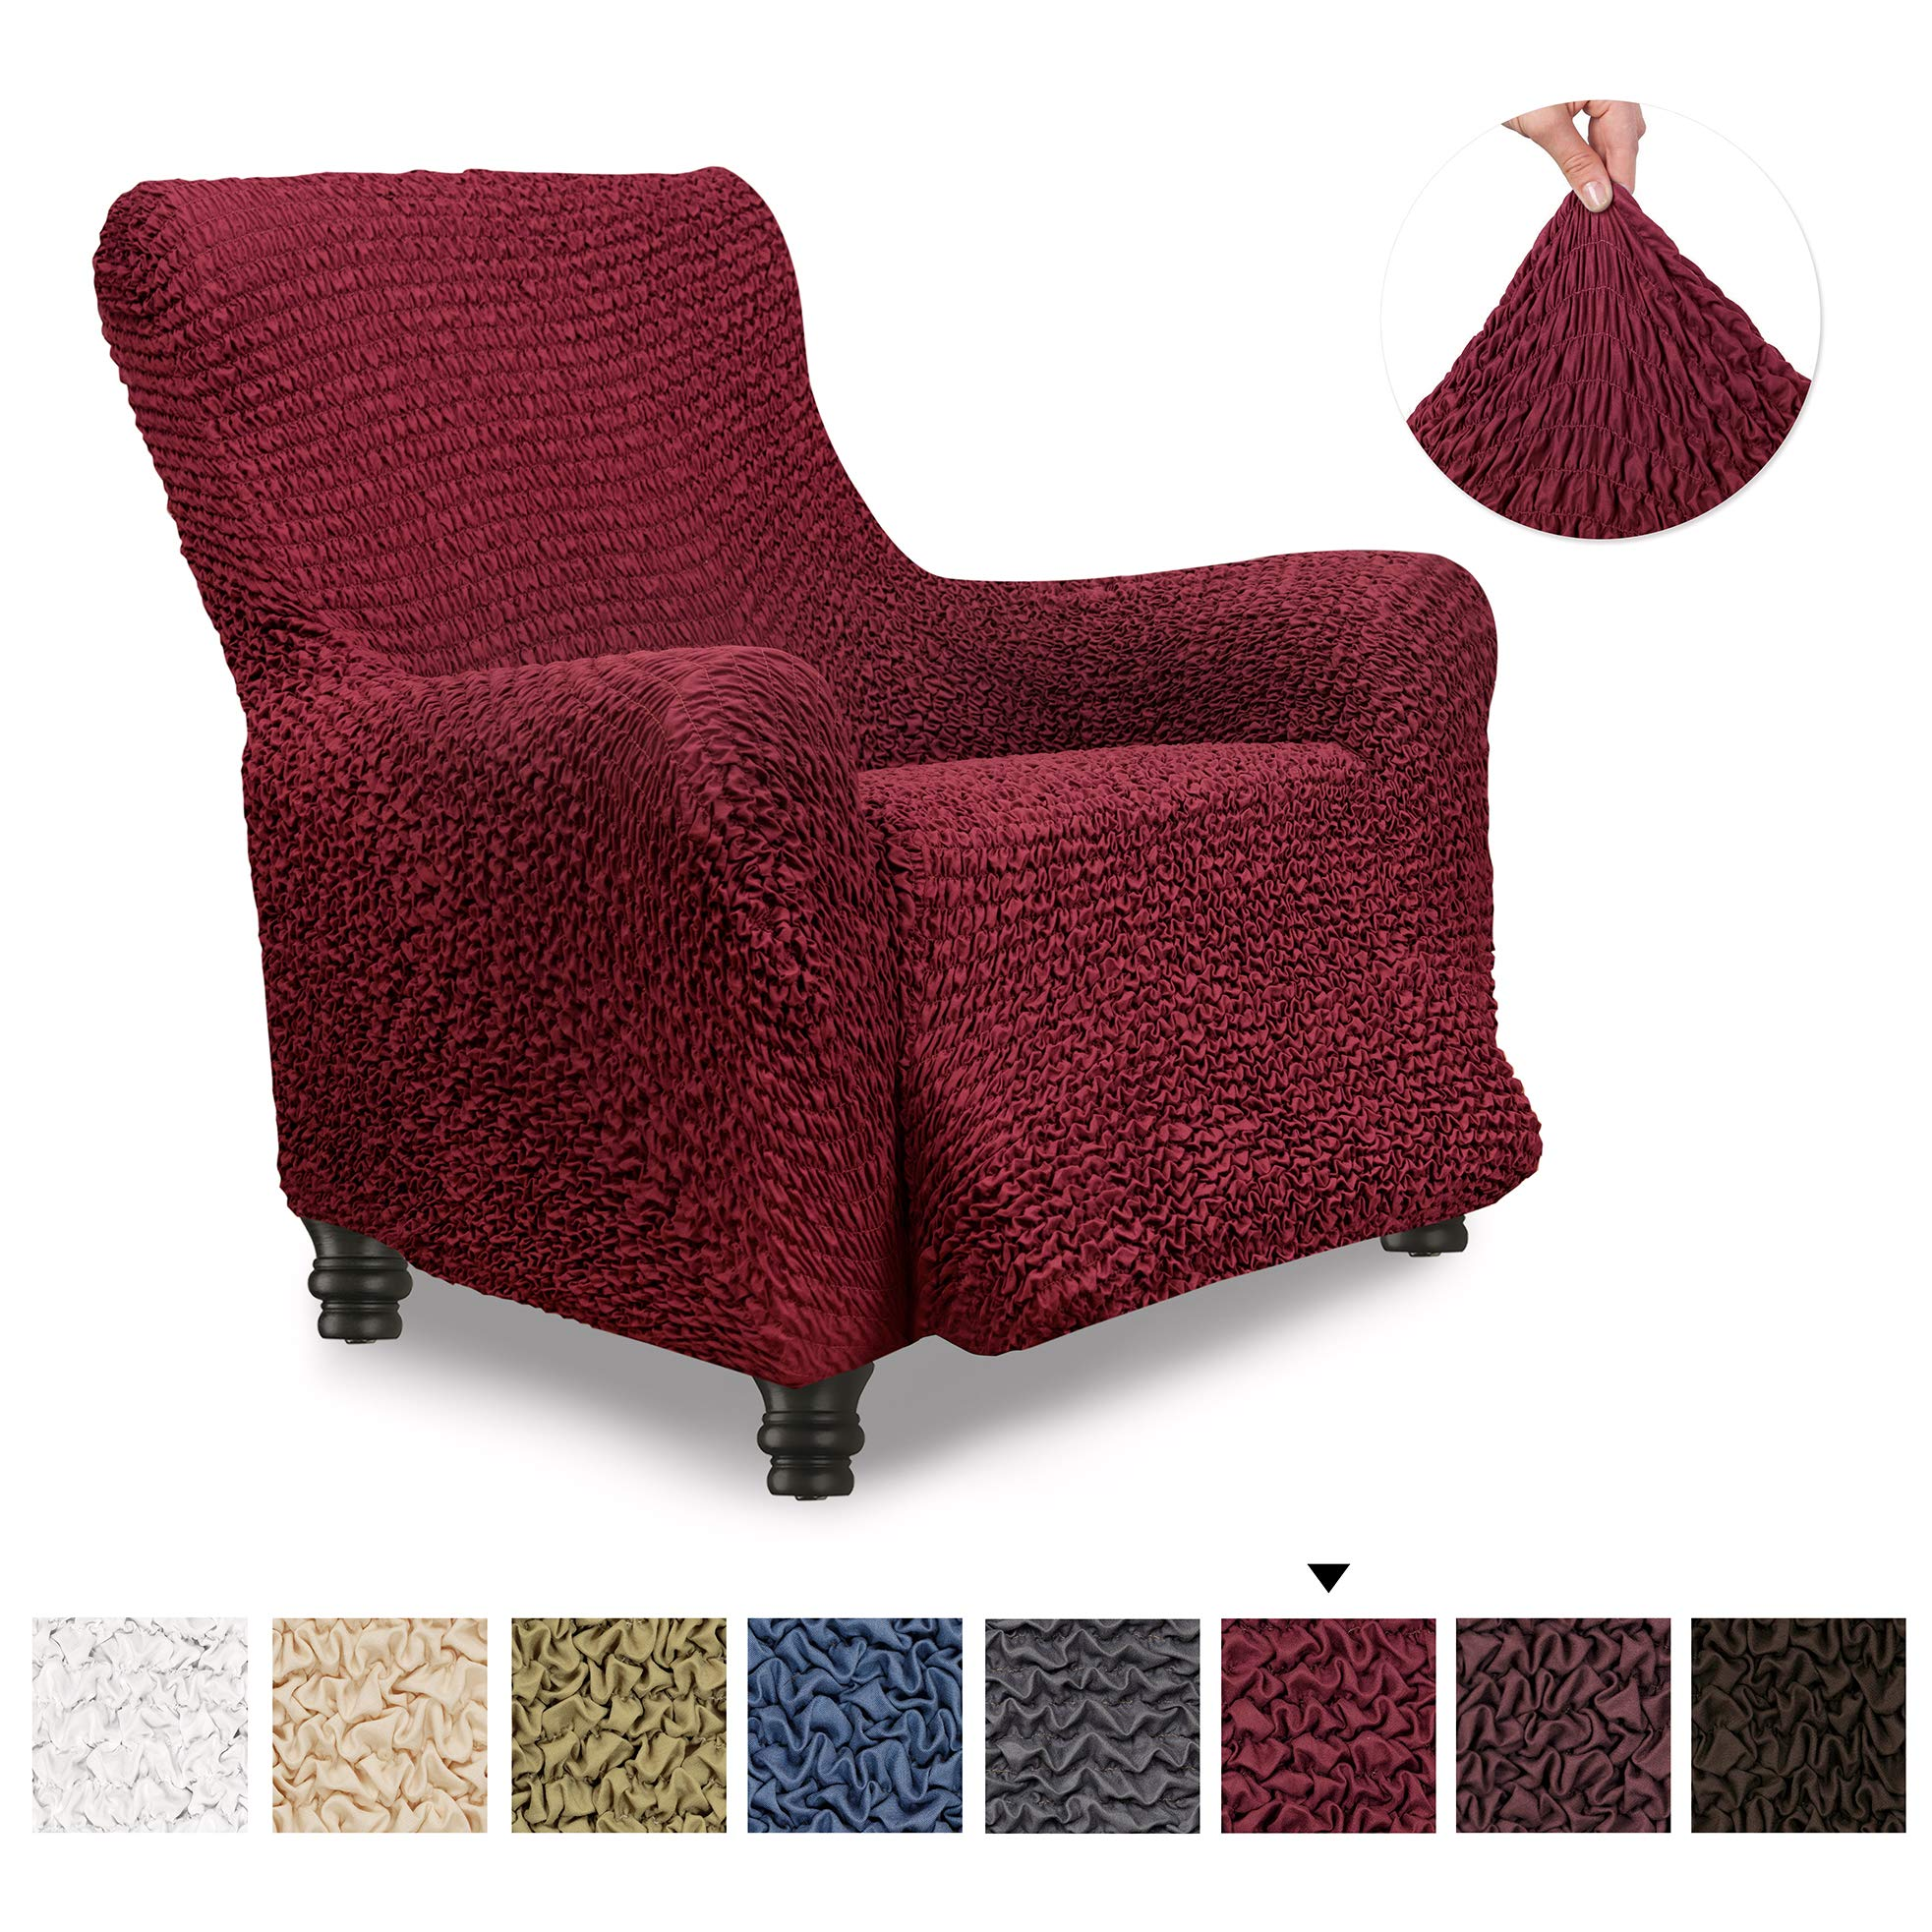 Recliner Cover - Recliner Chair Cover - Recliner Slipcover - Soft Polyester Fabric Slipcover - 1-piece Form Fit Stretch Stylish Furniture Protector - Microfibra Collection - Bordeaux (Recliner) by PAULATO BY GA.I.CO.